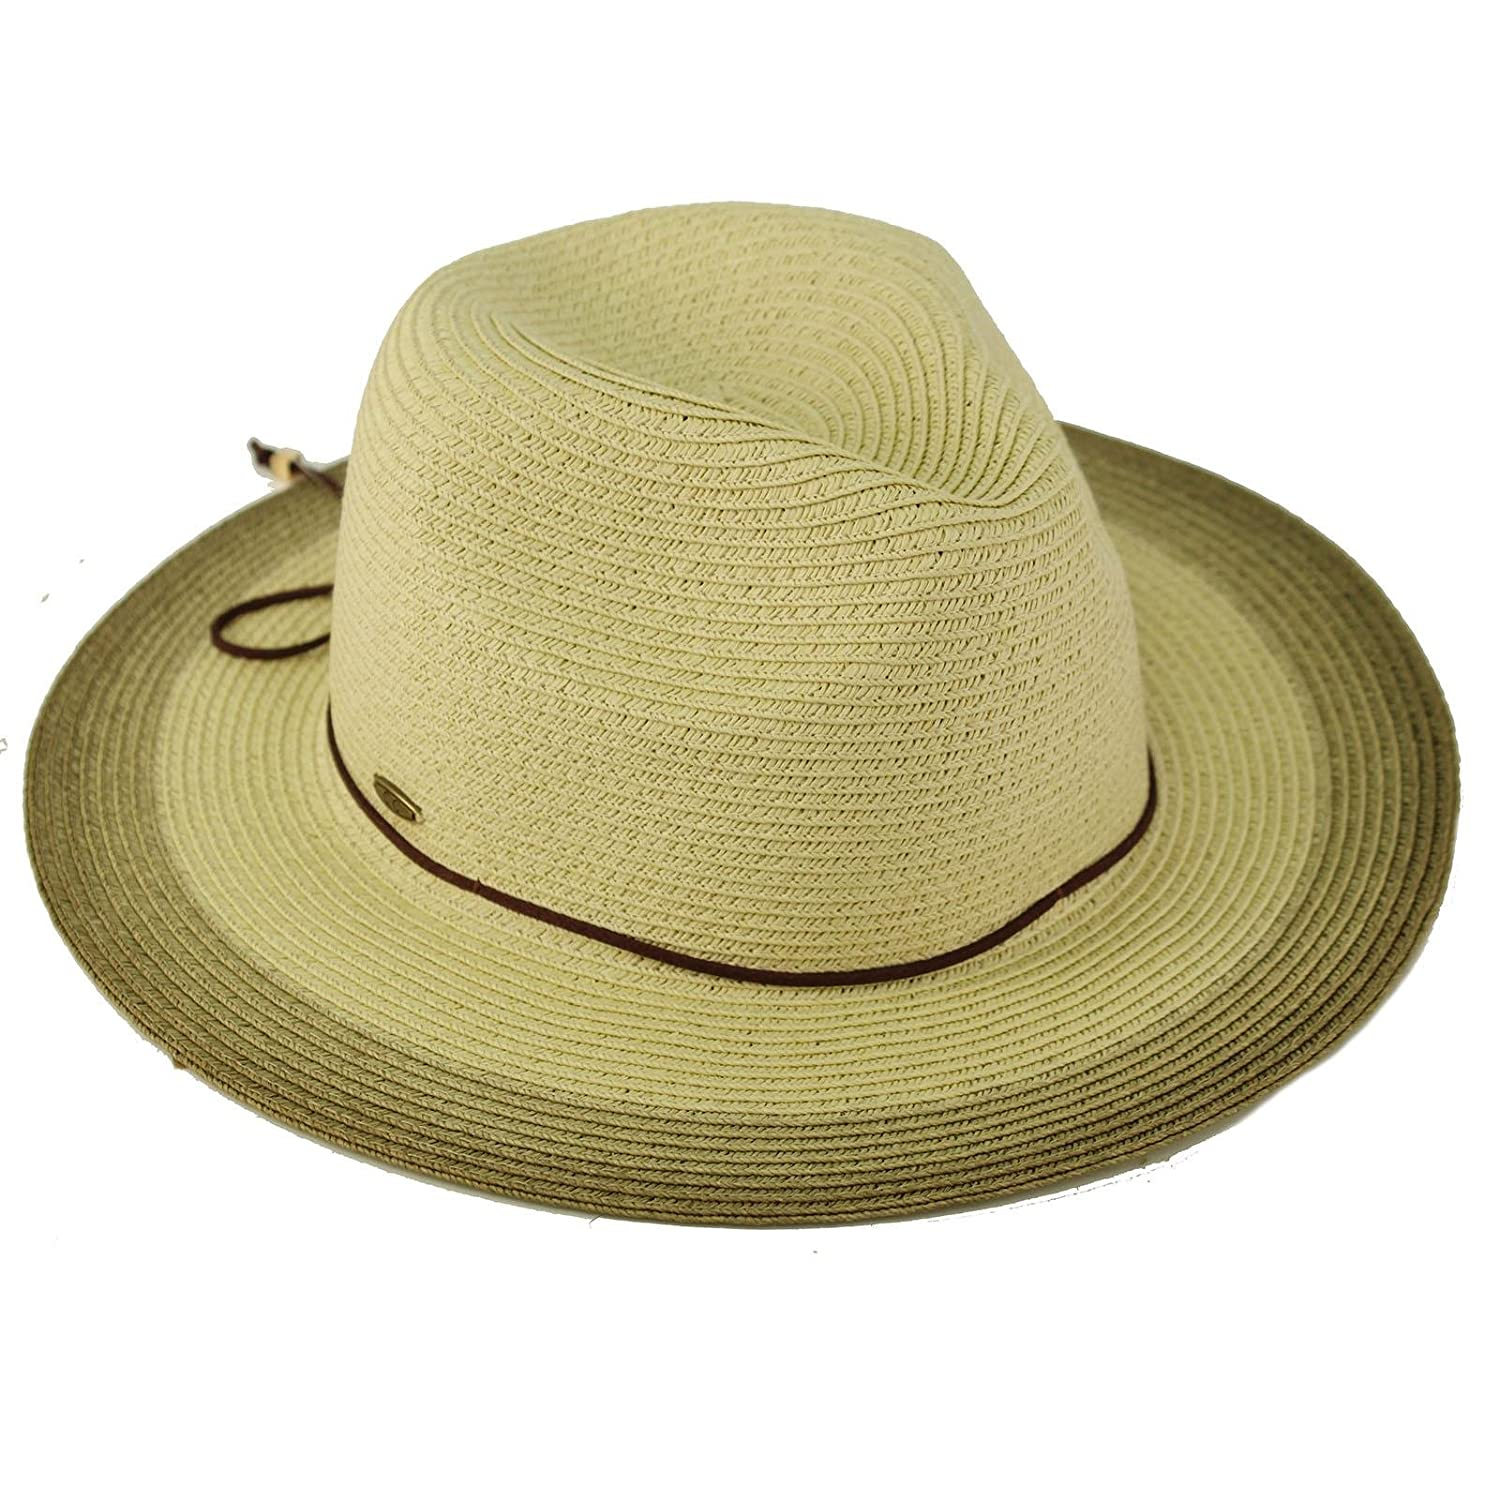 2fe911b7d8529 ... Summer Beach Pool Dress Sun Hat. Wholesale Price 14.95 80% Paper braid  20% Polyester Size  One size for teens and ladies w  adjustable interior ...